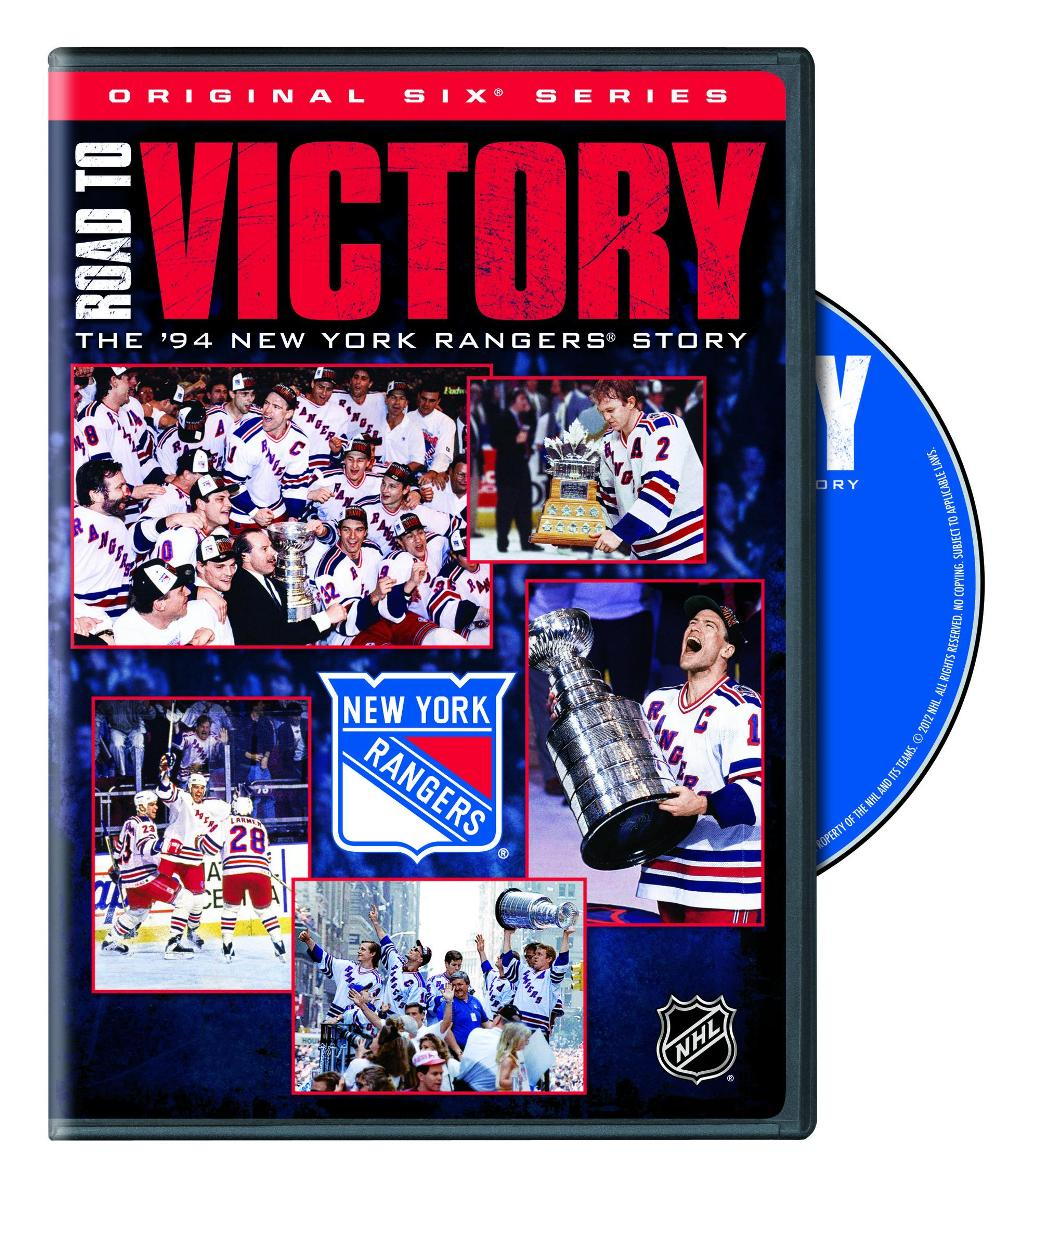 NHL Road To Victory: The New York Rangers Story (DVD)